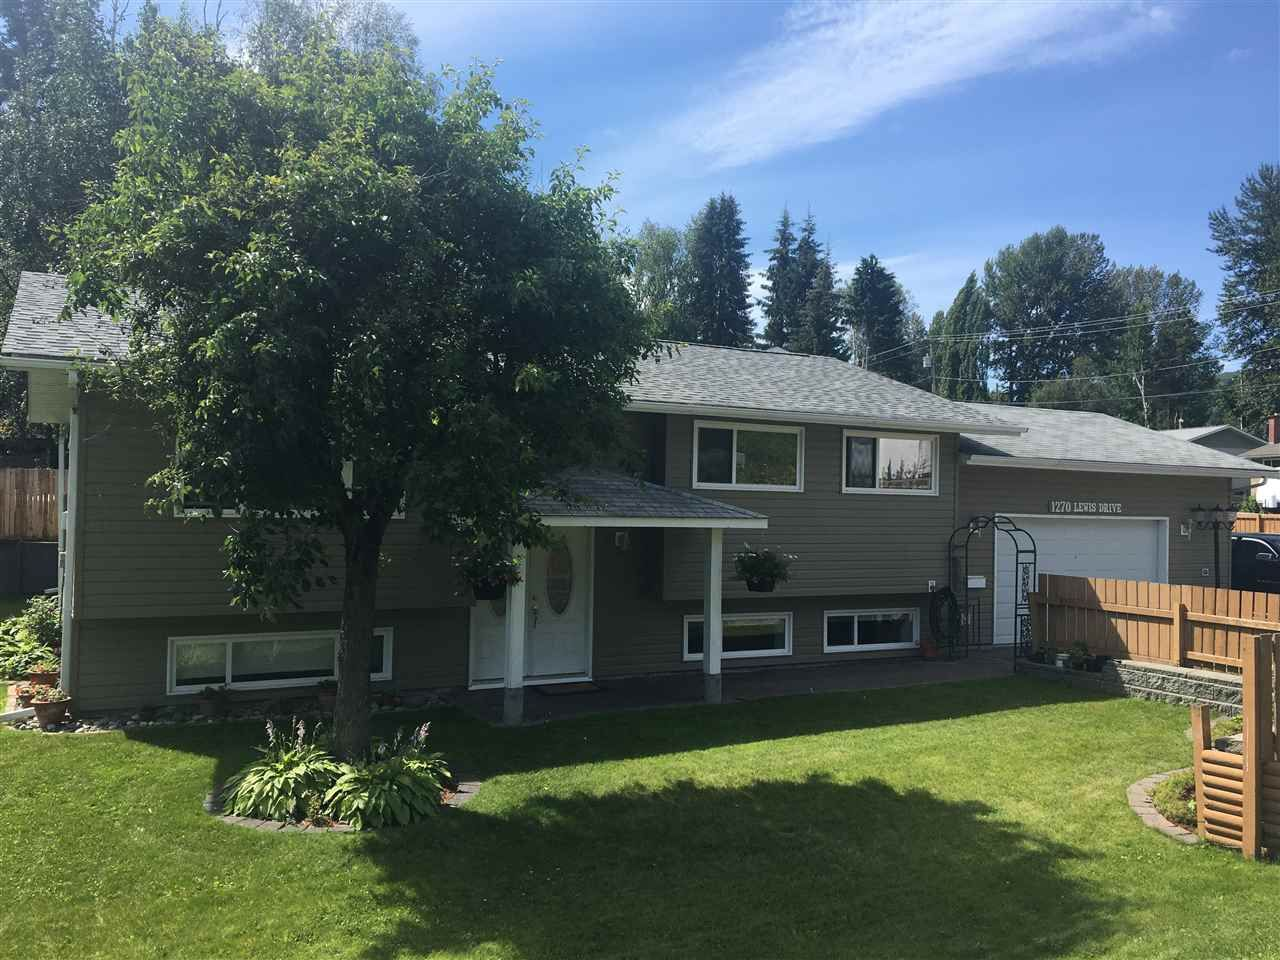 Photo 2: Photos: 1270 LEWIS Drive in Quesnel: Quesnel - Town House for sale (Quesnel (Zone 28))  : MLS®# R2478328